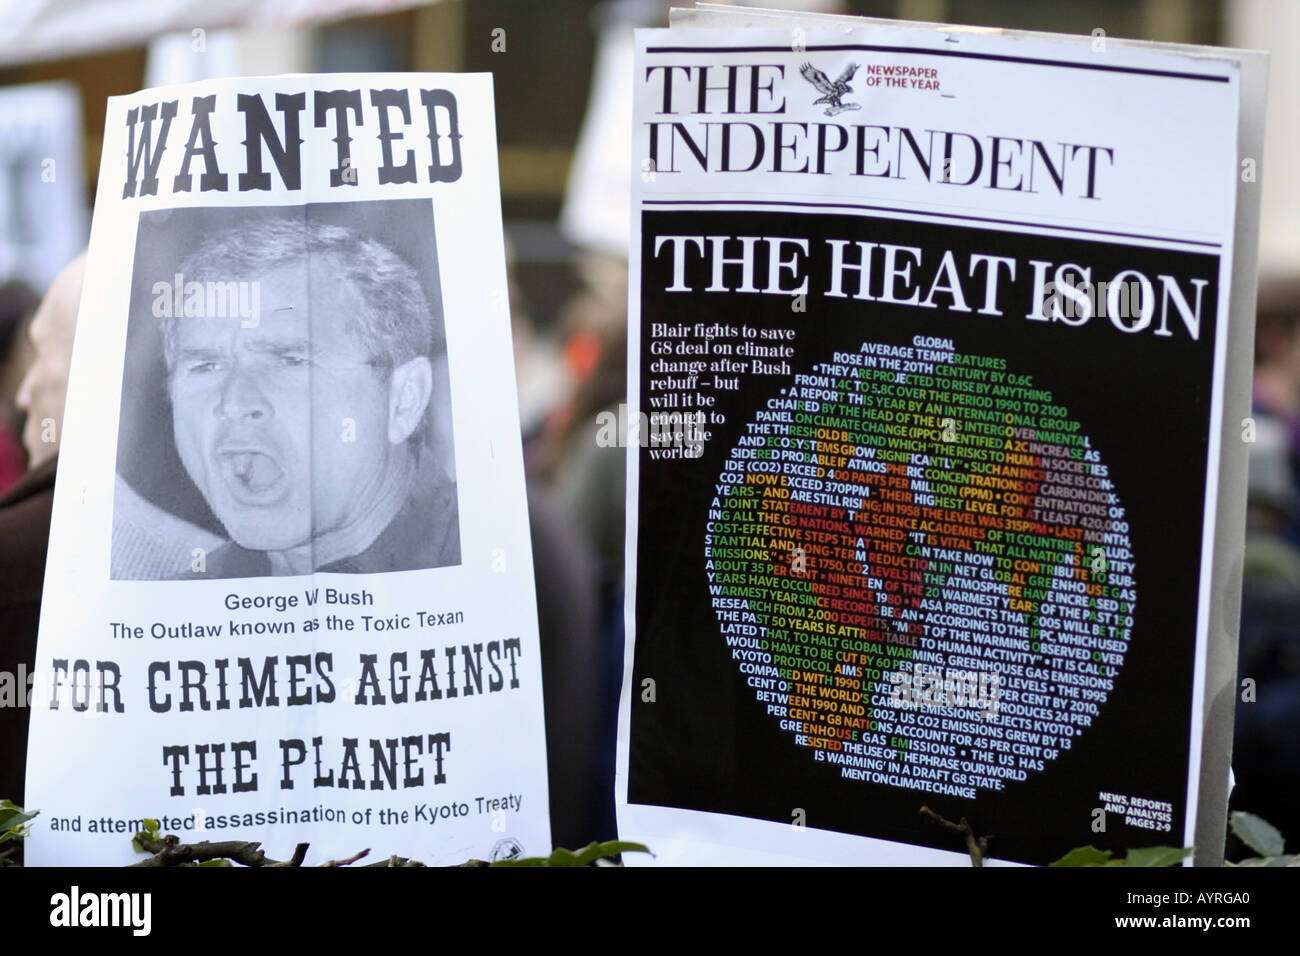 Protest placards at a Climate Change demonstration in London UK - Stock Image